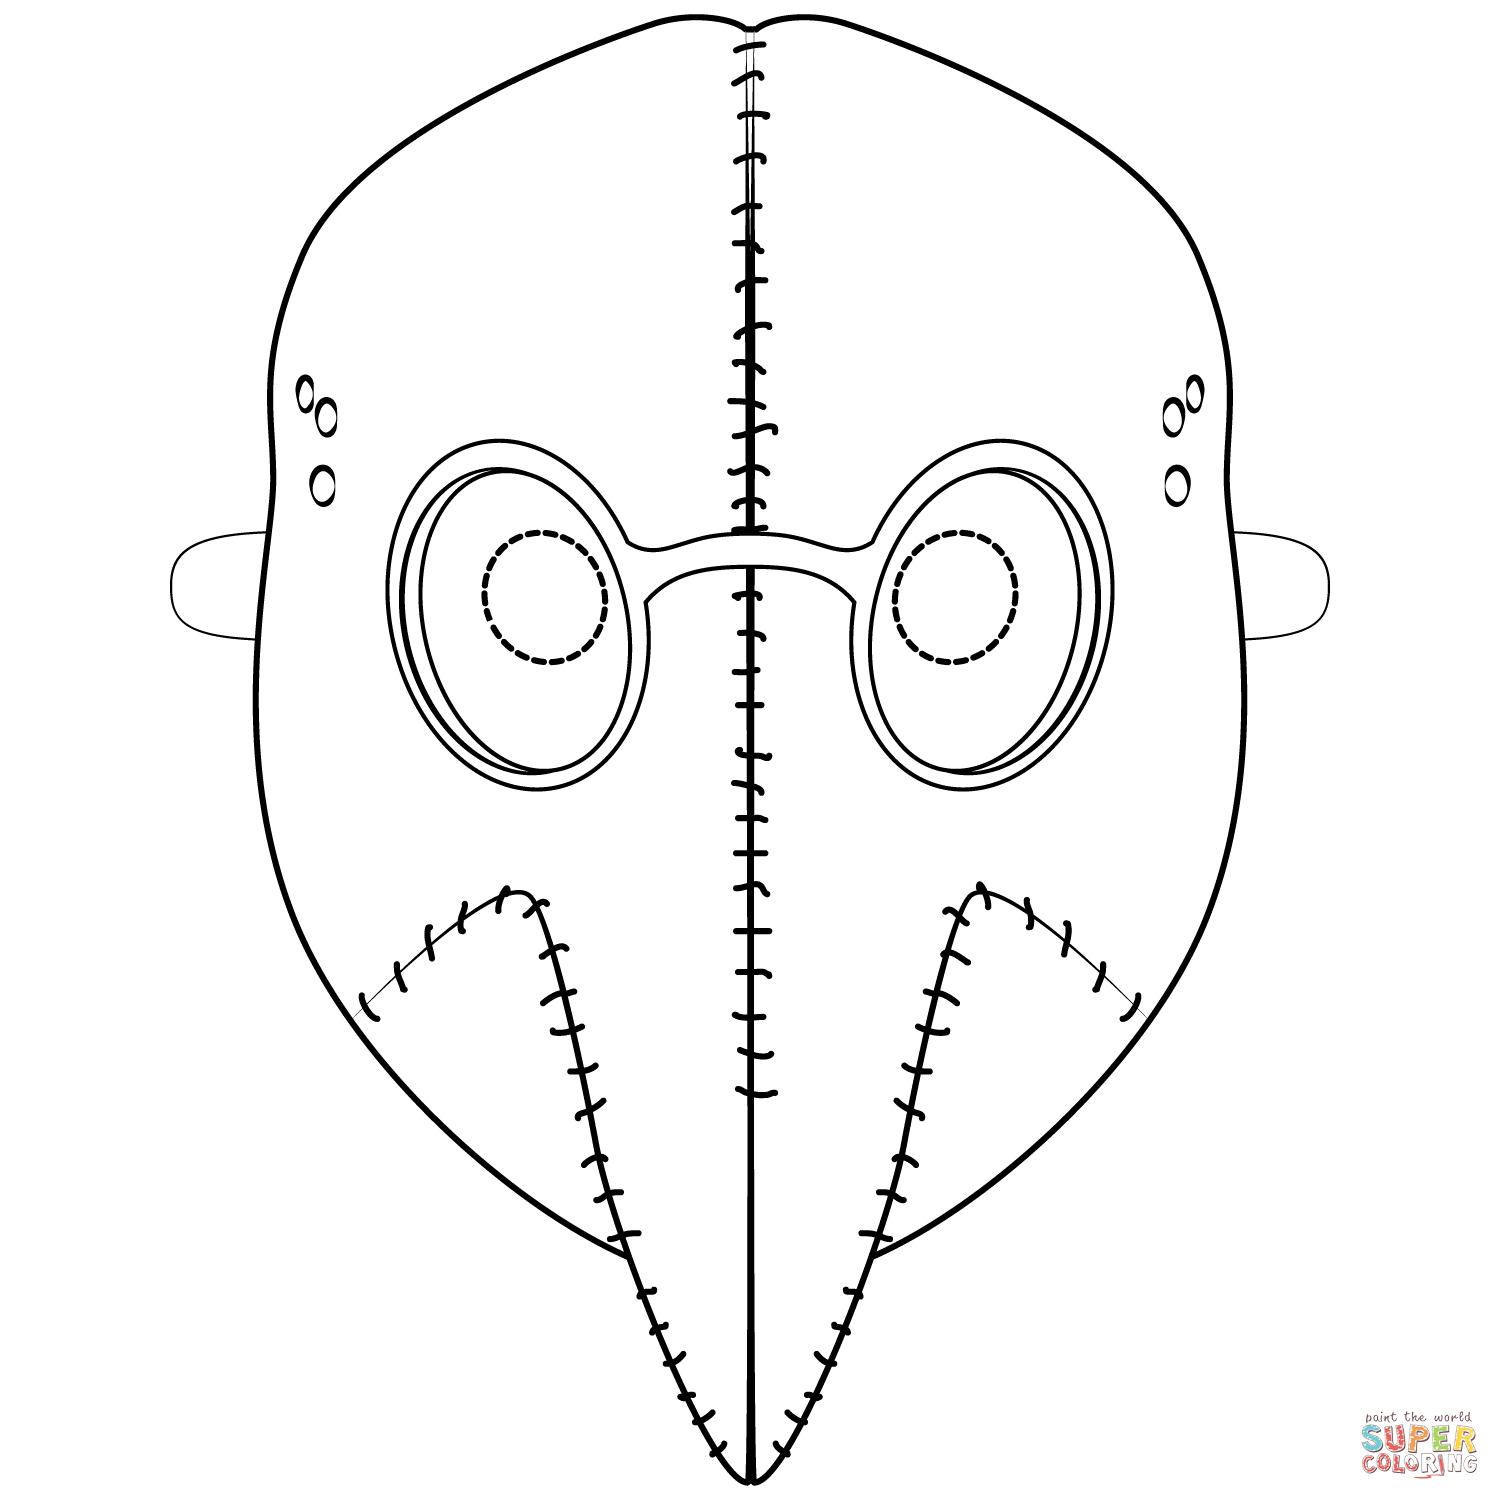 Plague Mask Coloring Page Free Printable Coloring Pages Plague Mask Free Printable Coloring Pages Coloring Pages